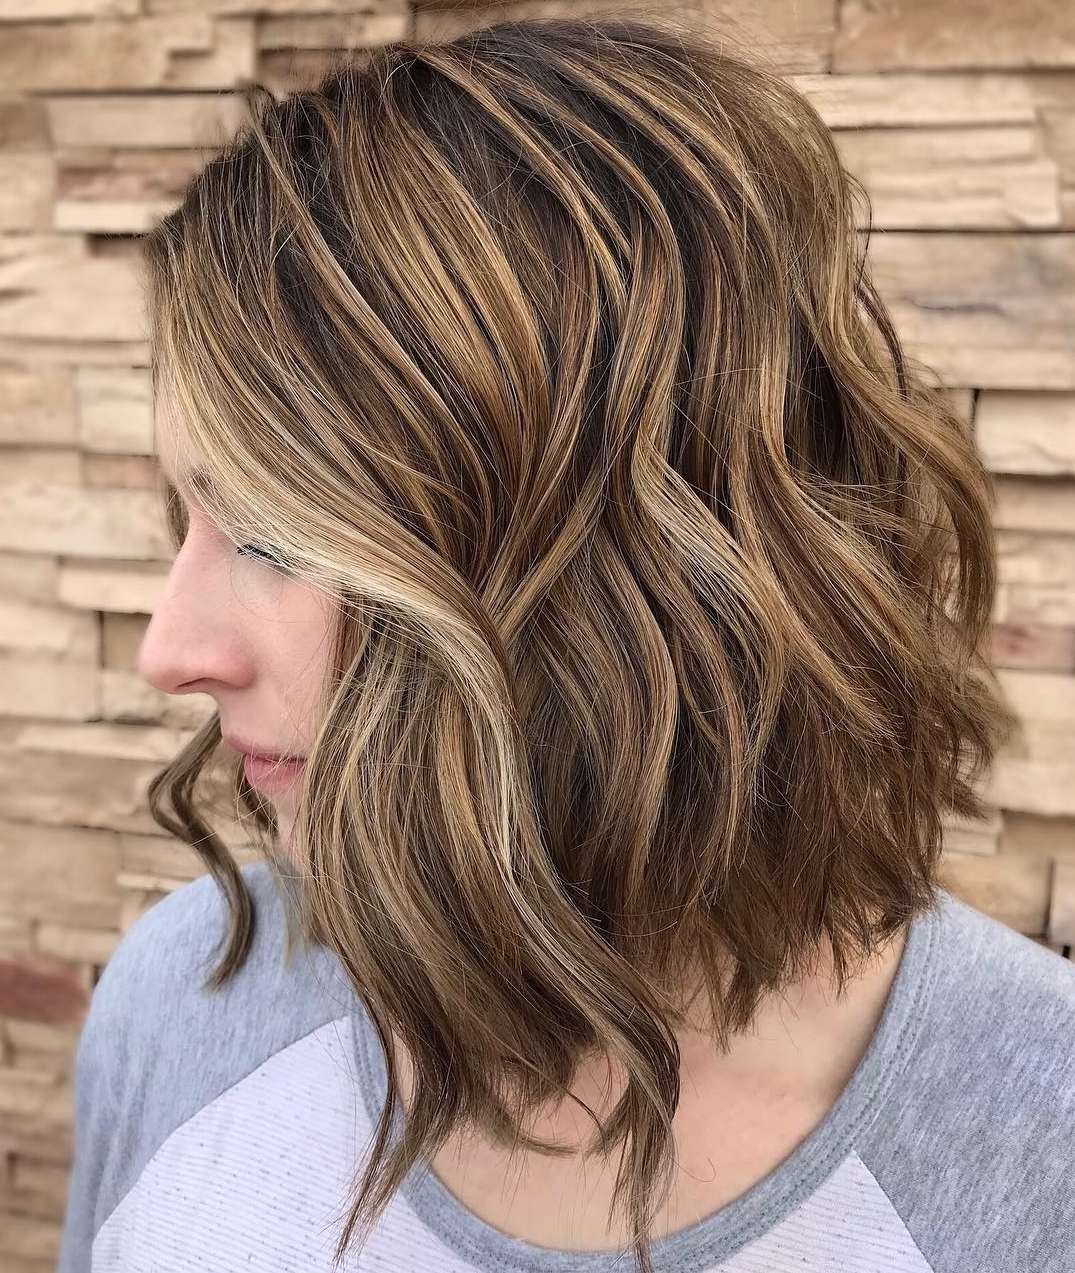 60 Medium Length Haircuts And Hairstyles To Pull Off In 2020 Highlighted Medium Length Hairstyles